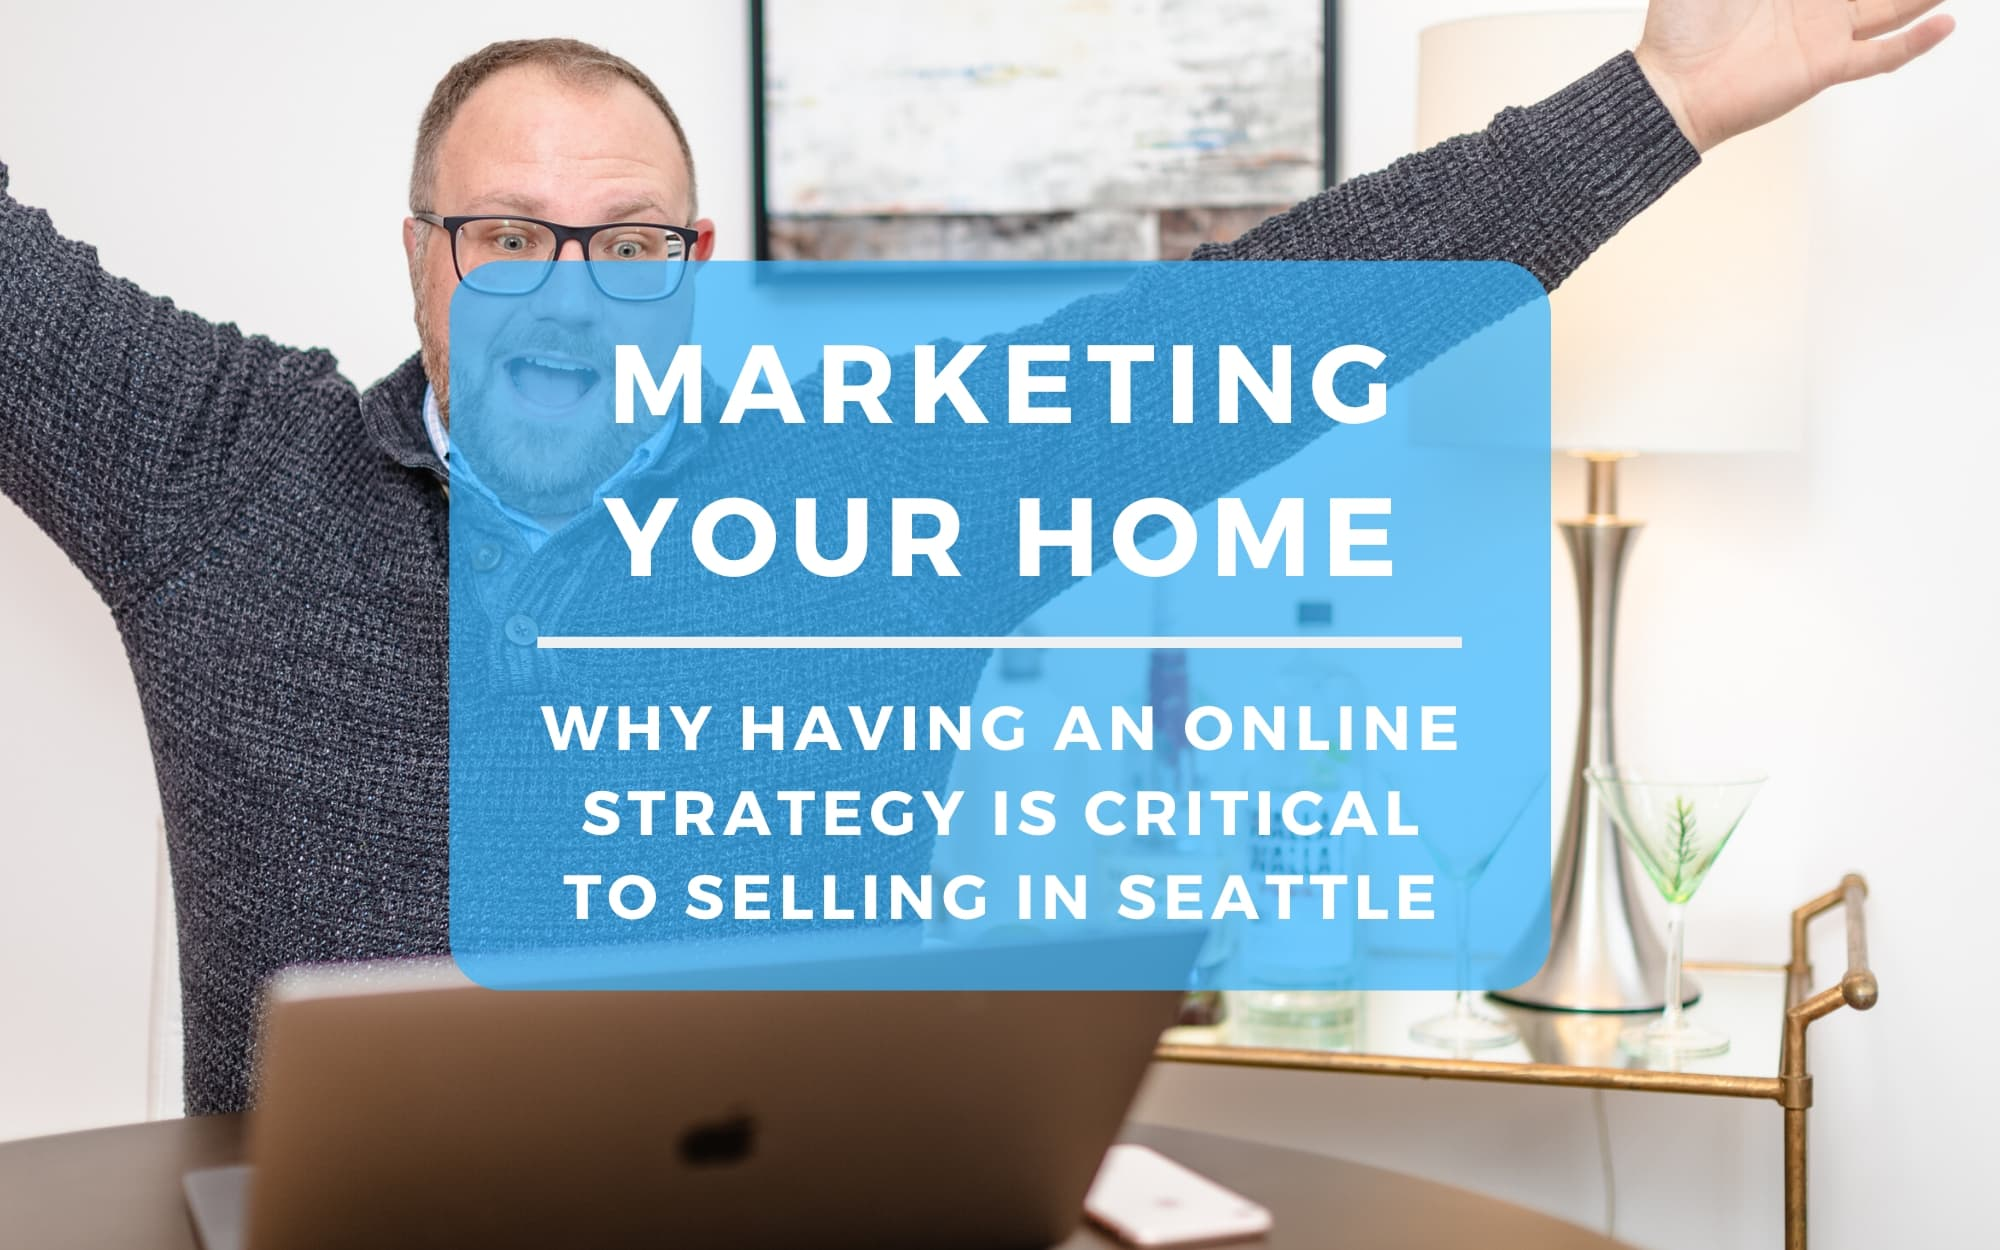 Marketing Your Home Online to Sell in Seattle